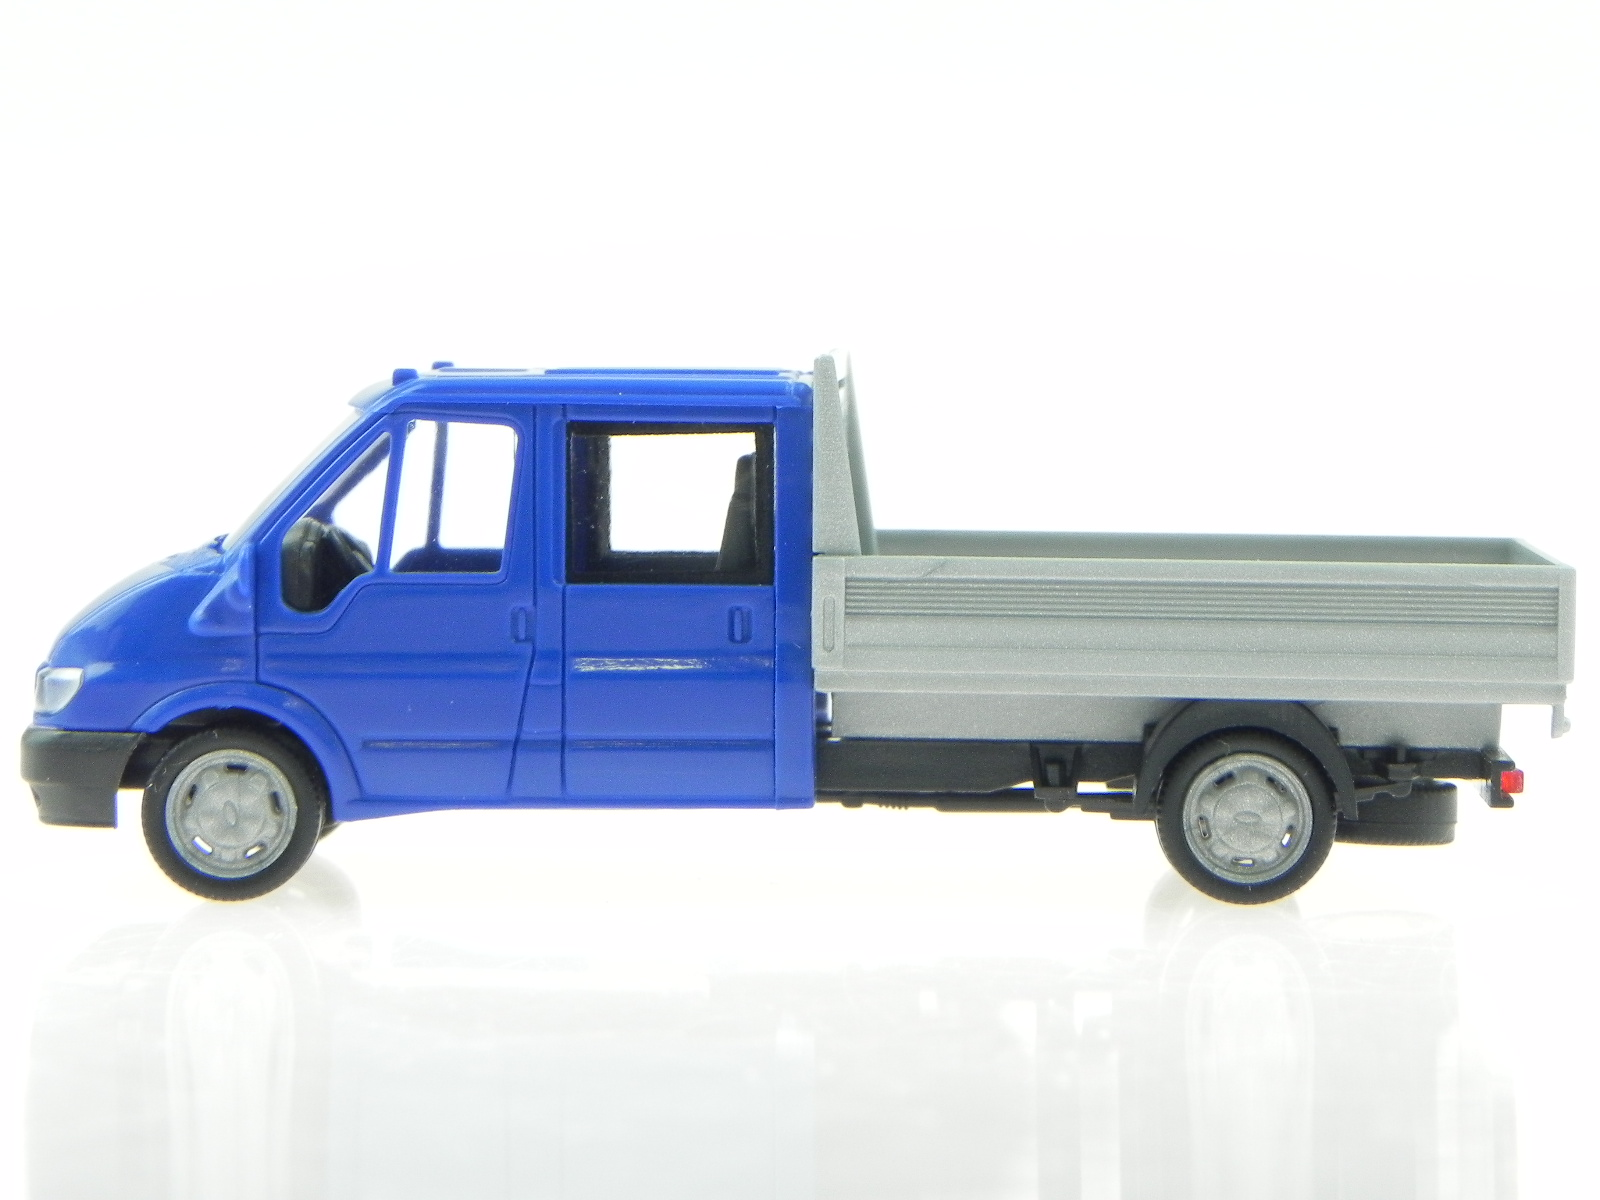 ford transit 2005 doka pickup blue modelcar rietze 1 87. Black Bedroom Furniture Sets. Home Design Ideas